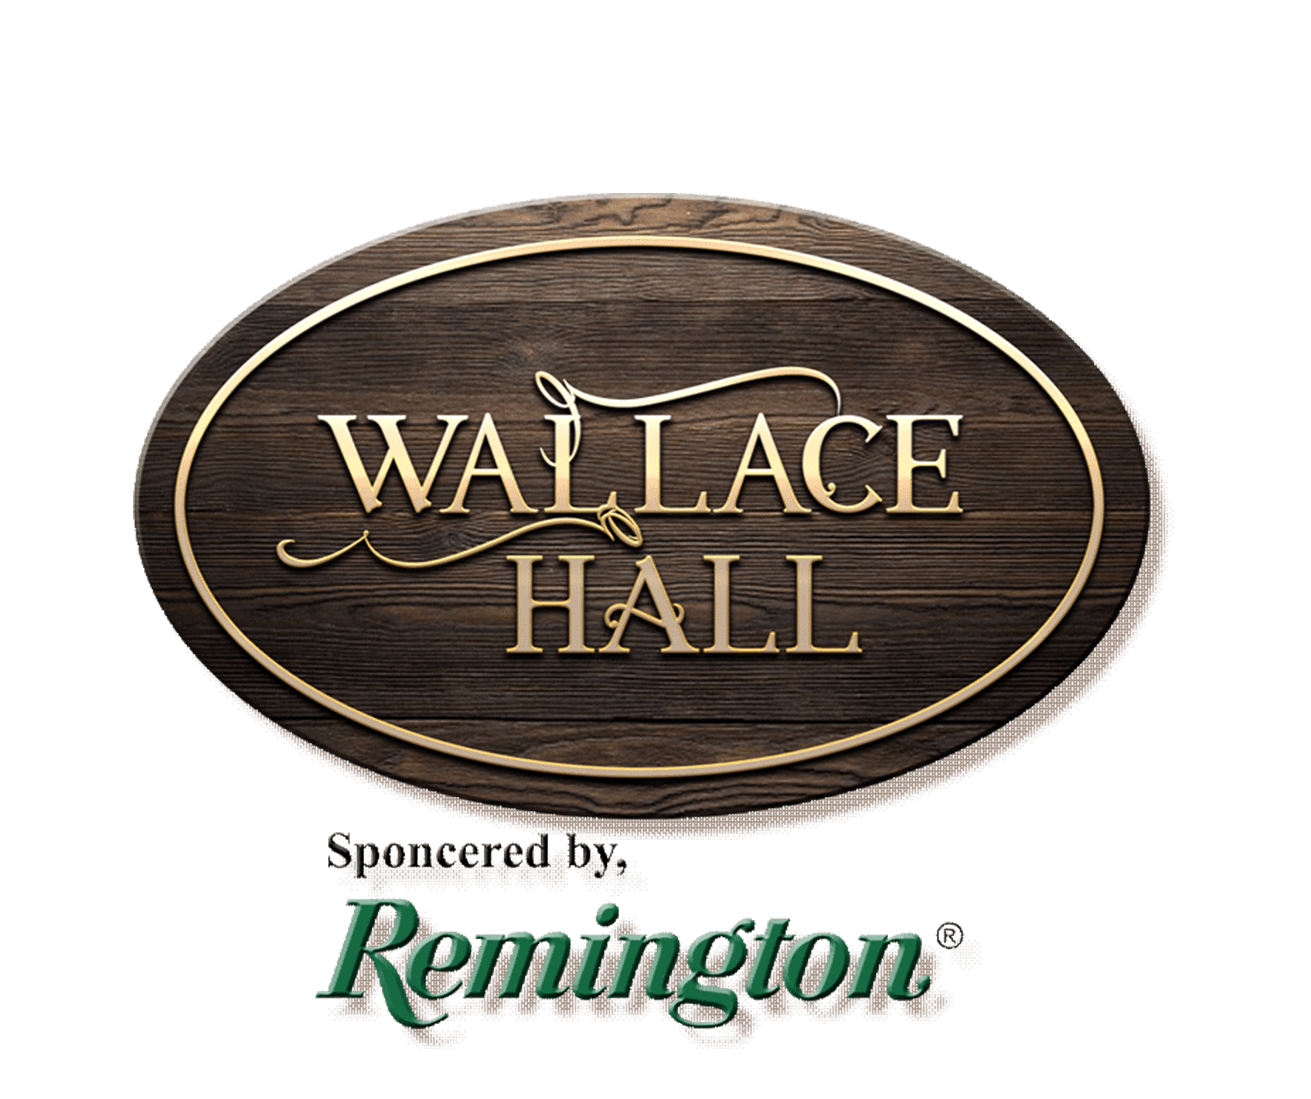 The Wallace Hall, Sponsored by Remington